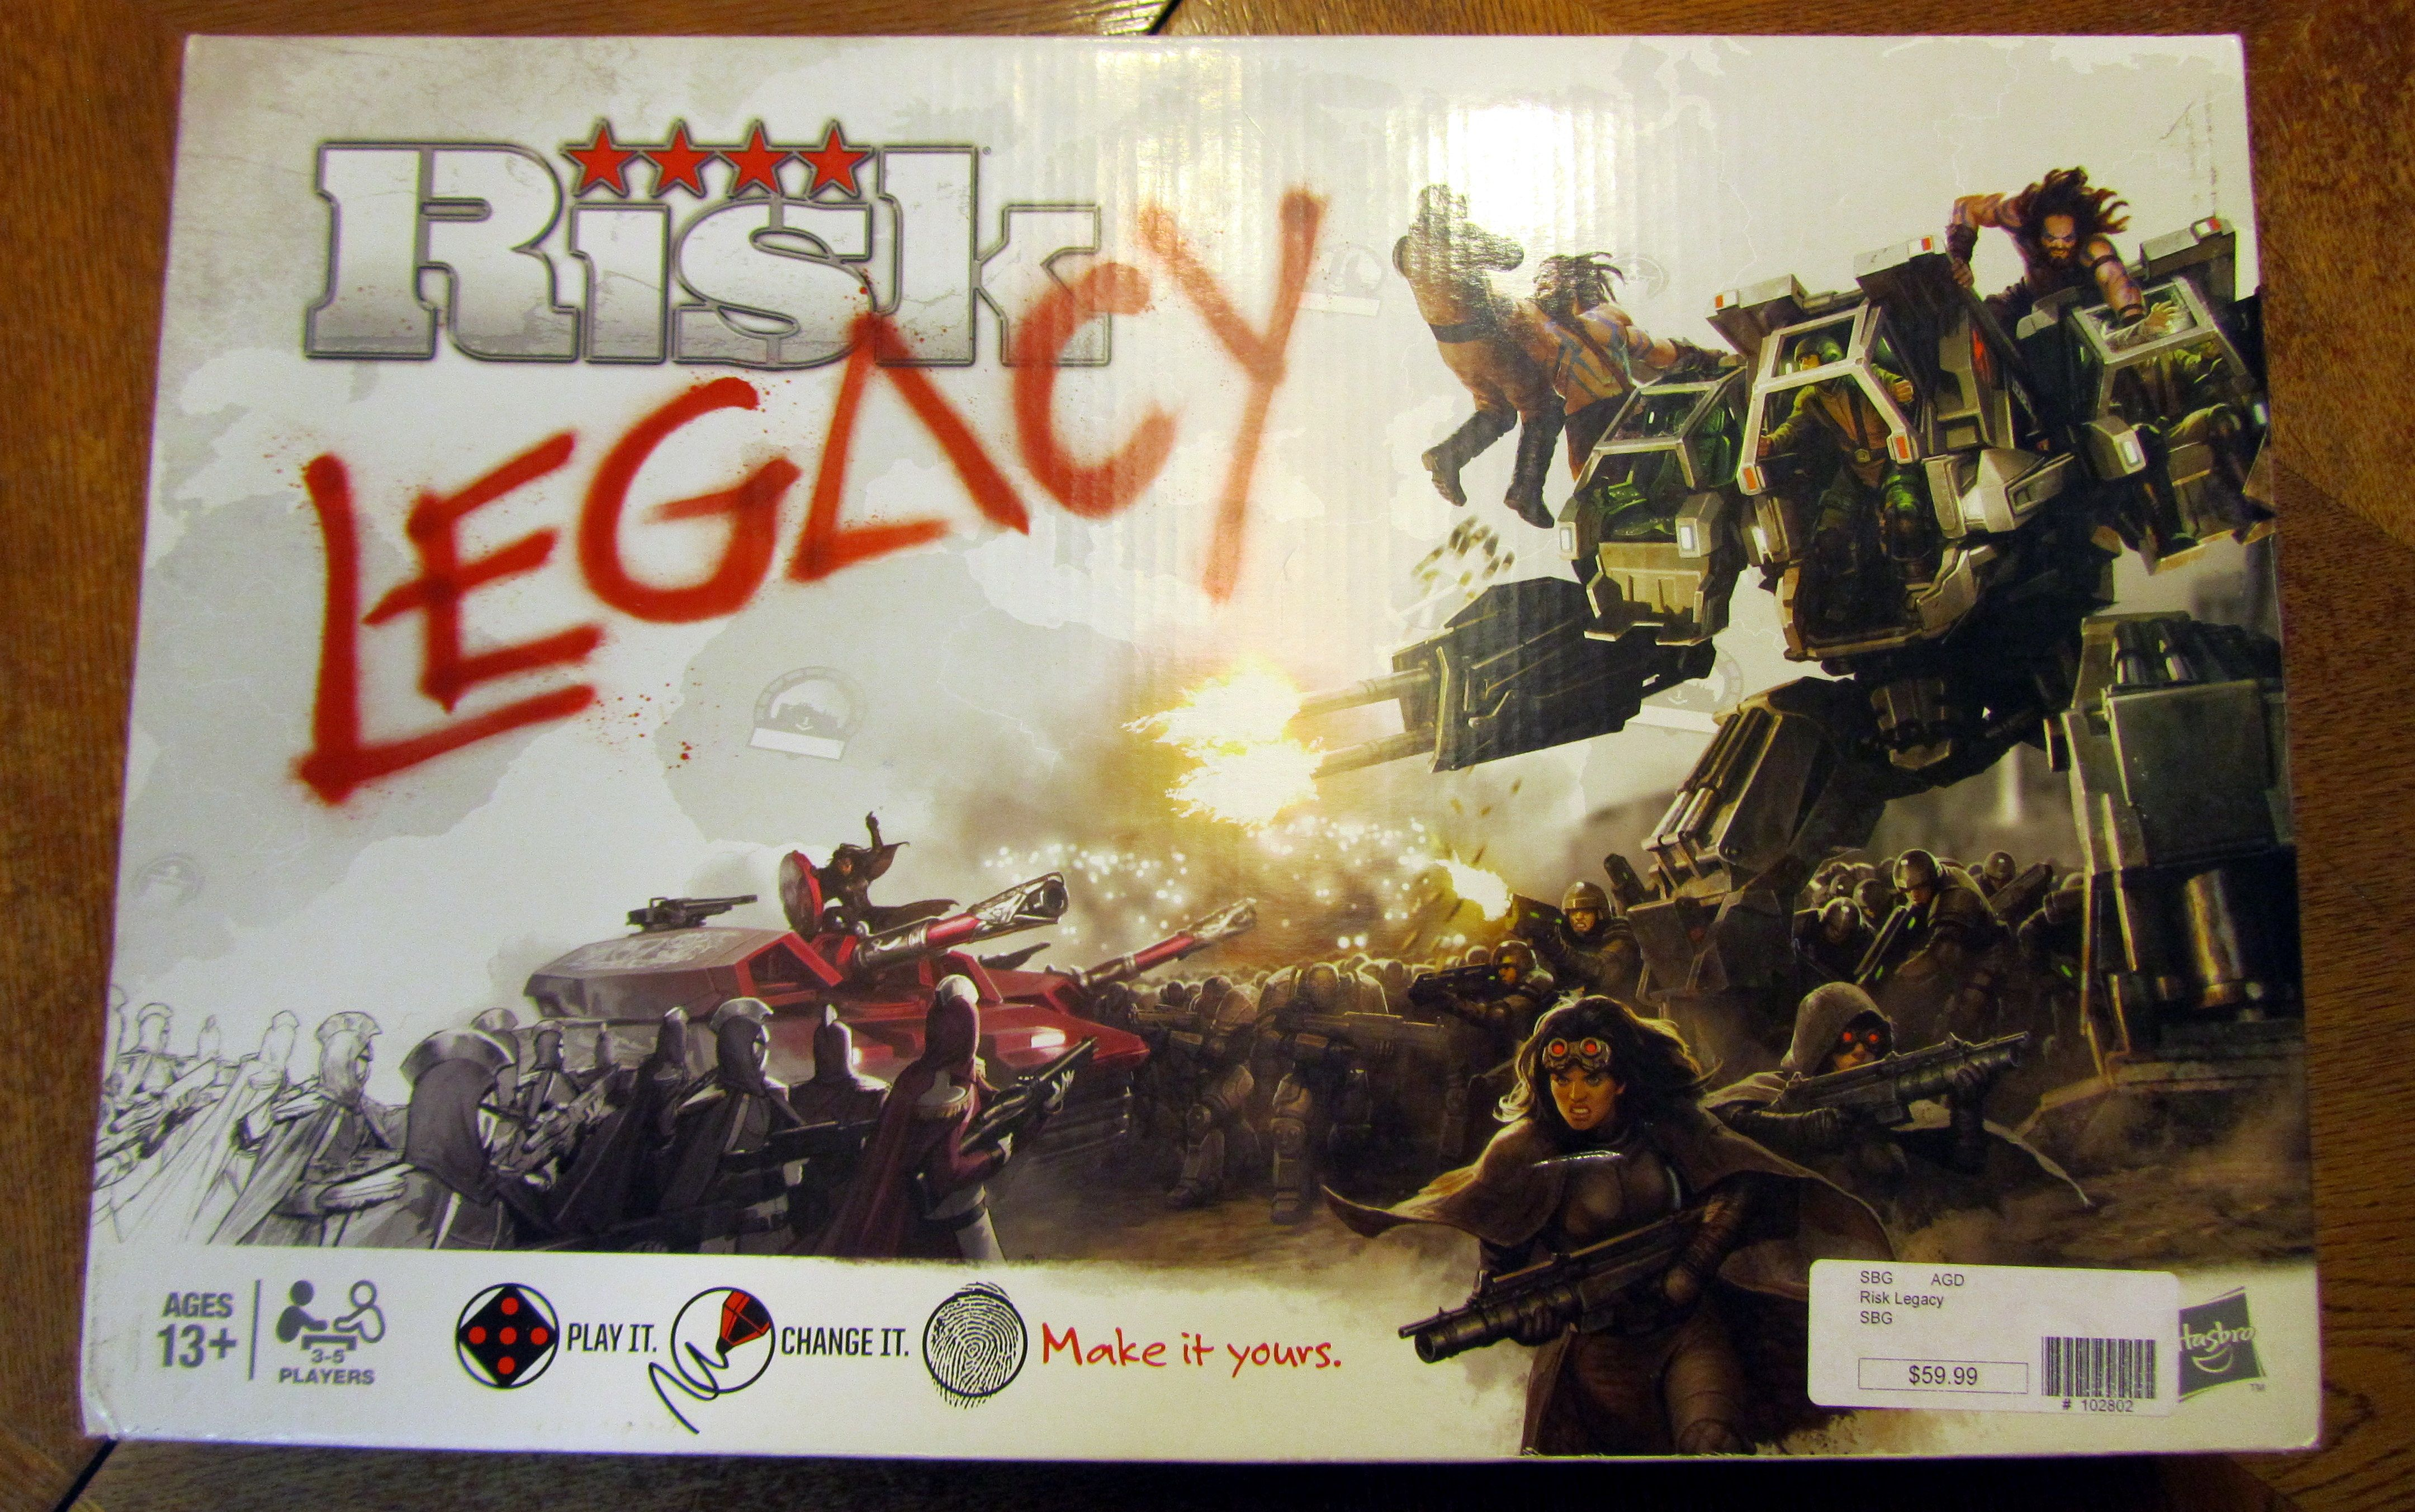 Great blog with a great review of Risk Legacy (spoiler